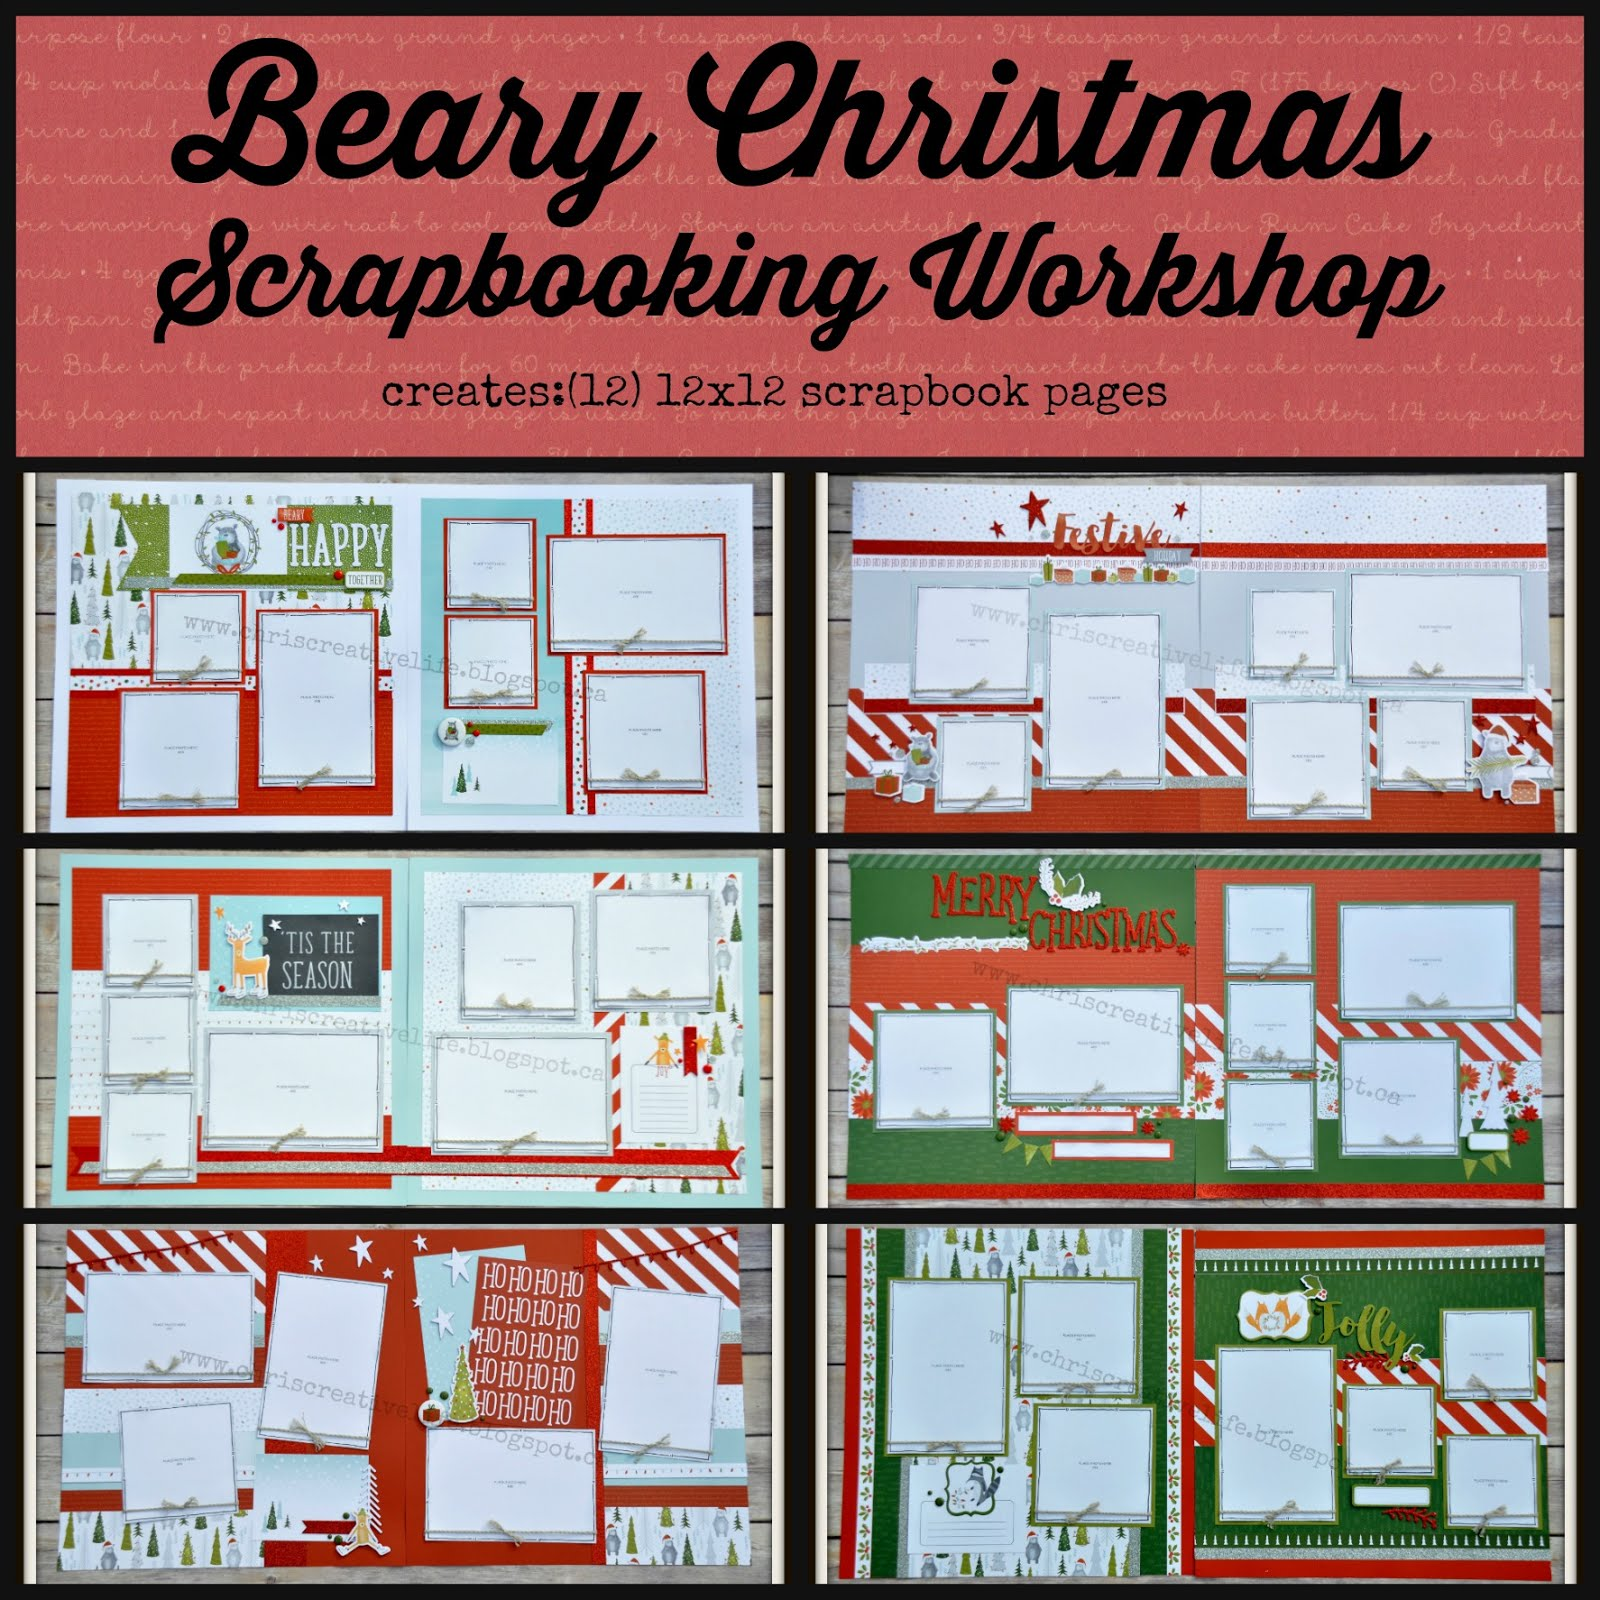 Beary Christmas Scrapbooking Workshop